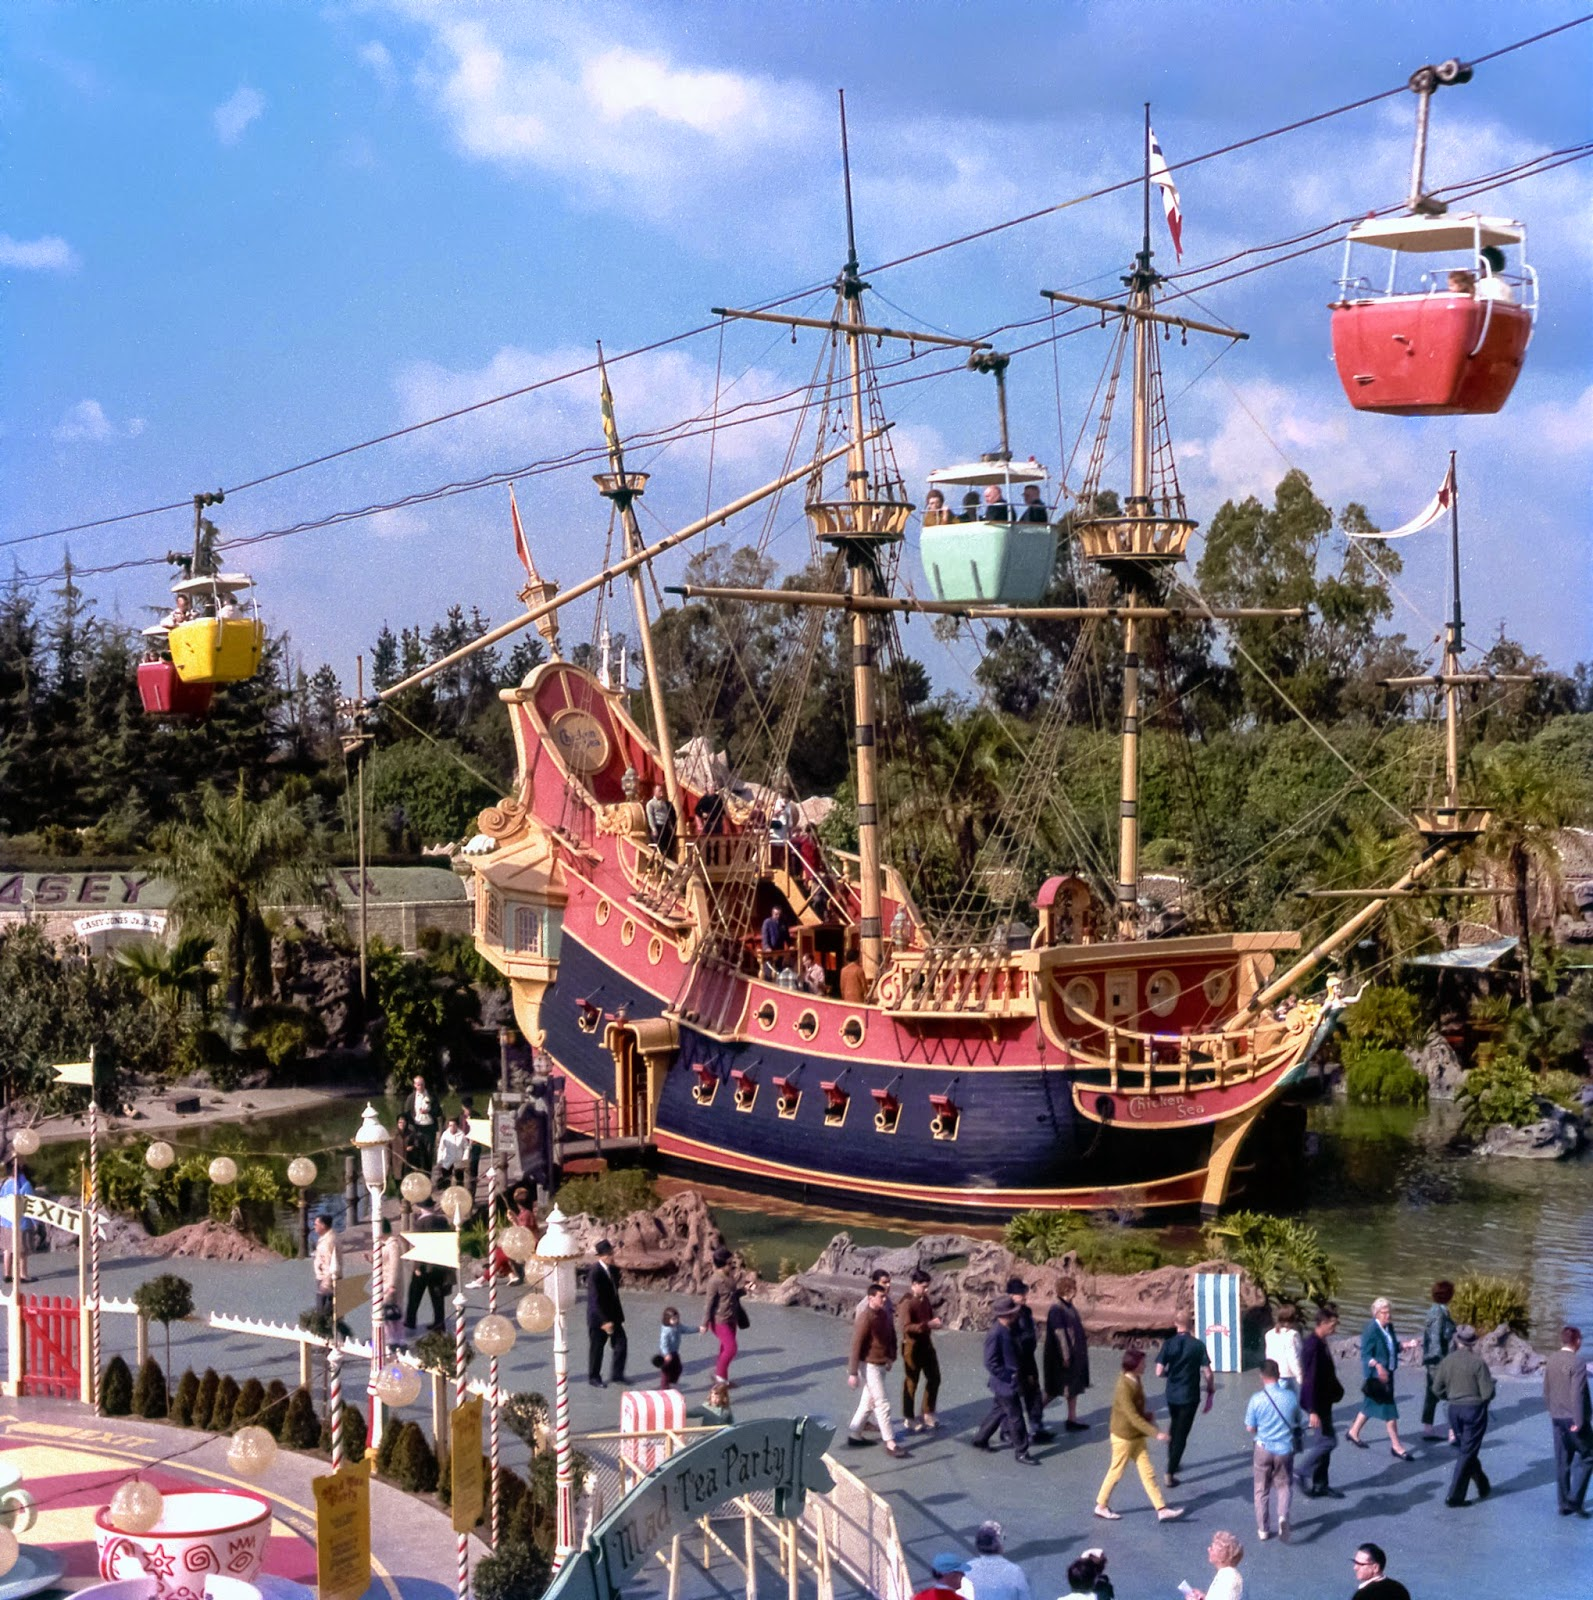 Mickeyphotos Fantasyland In The 60 S With The Chicken Of